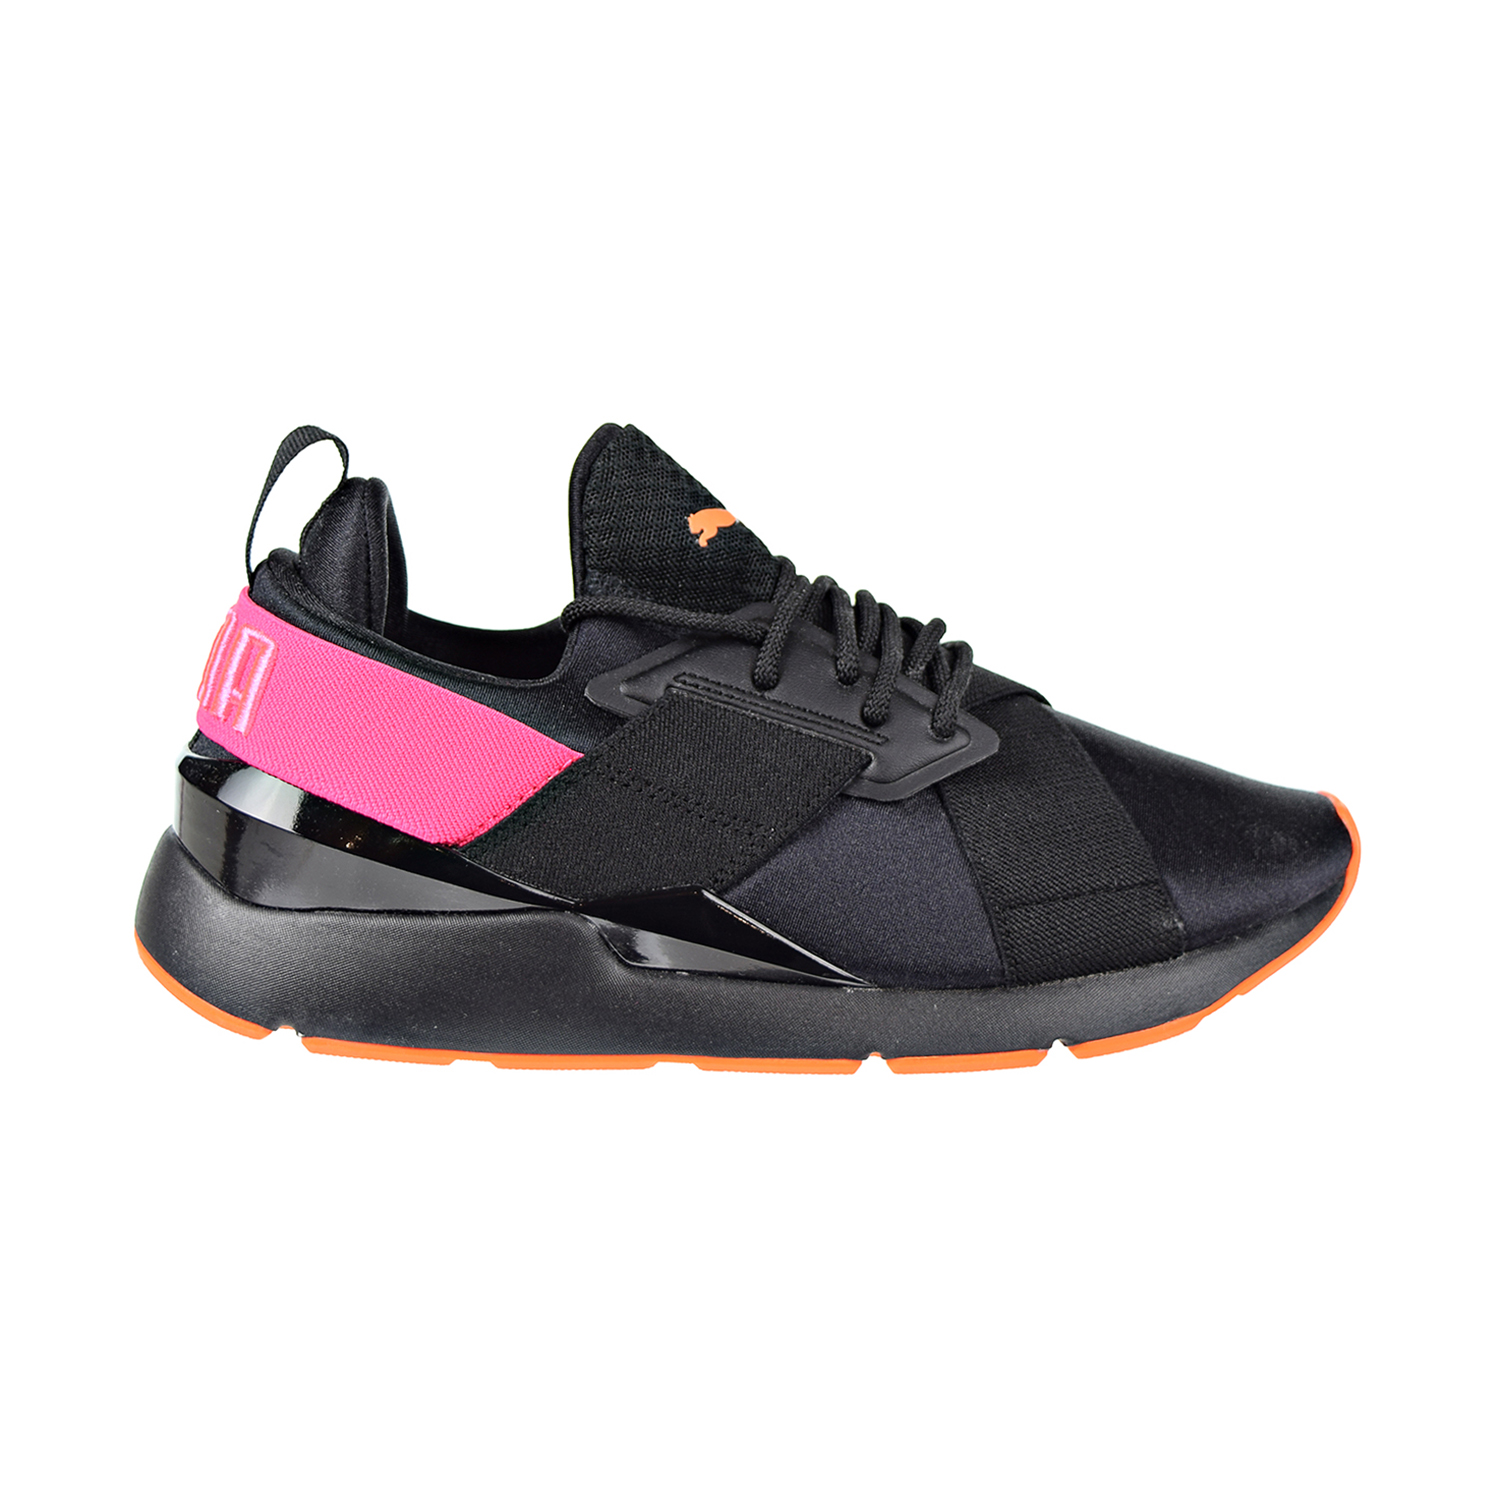 black and pink puma shoes